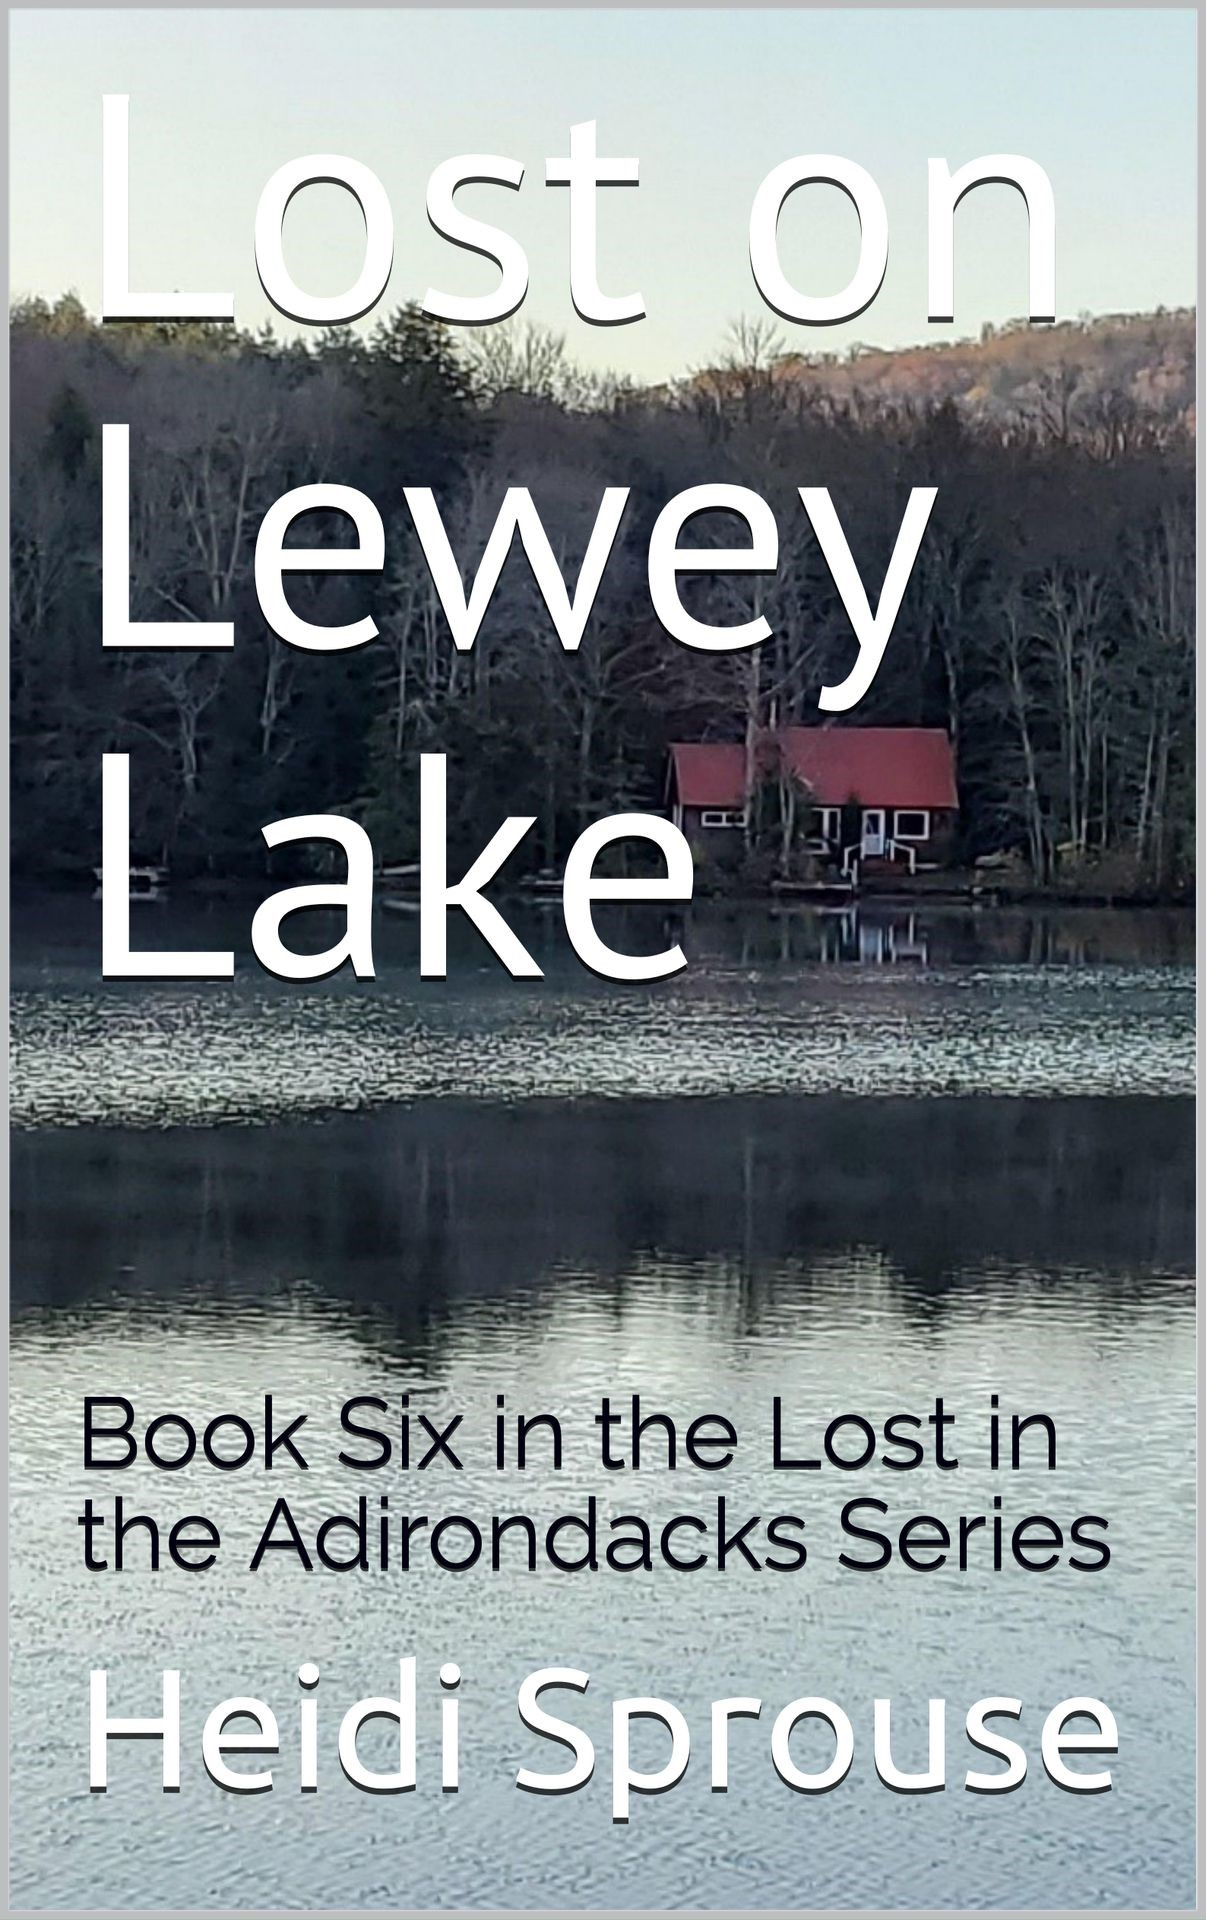 Lost on Lewey Lake official cover